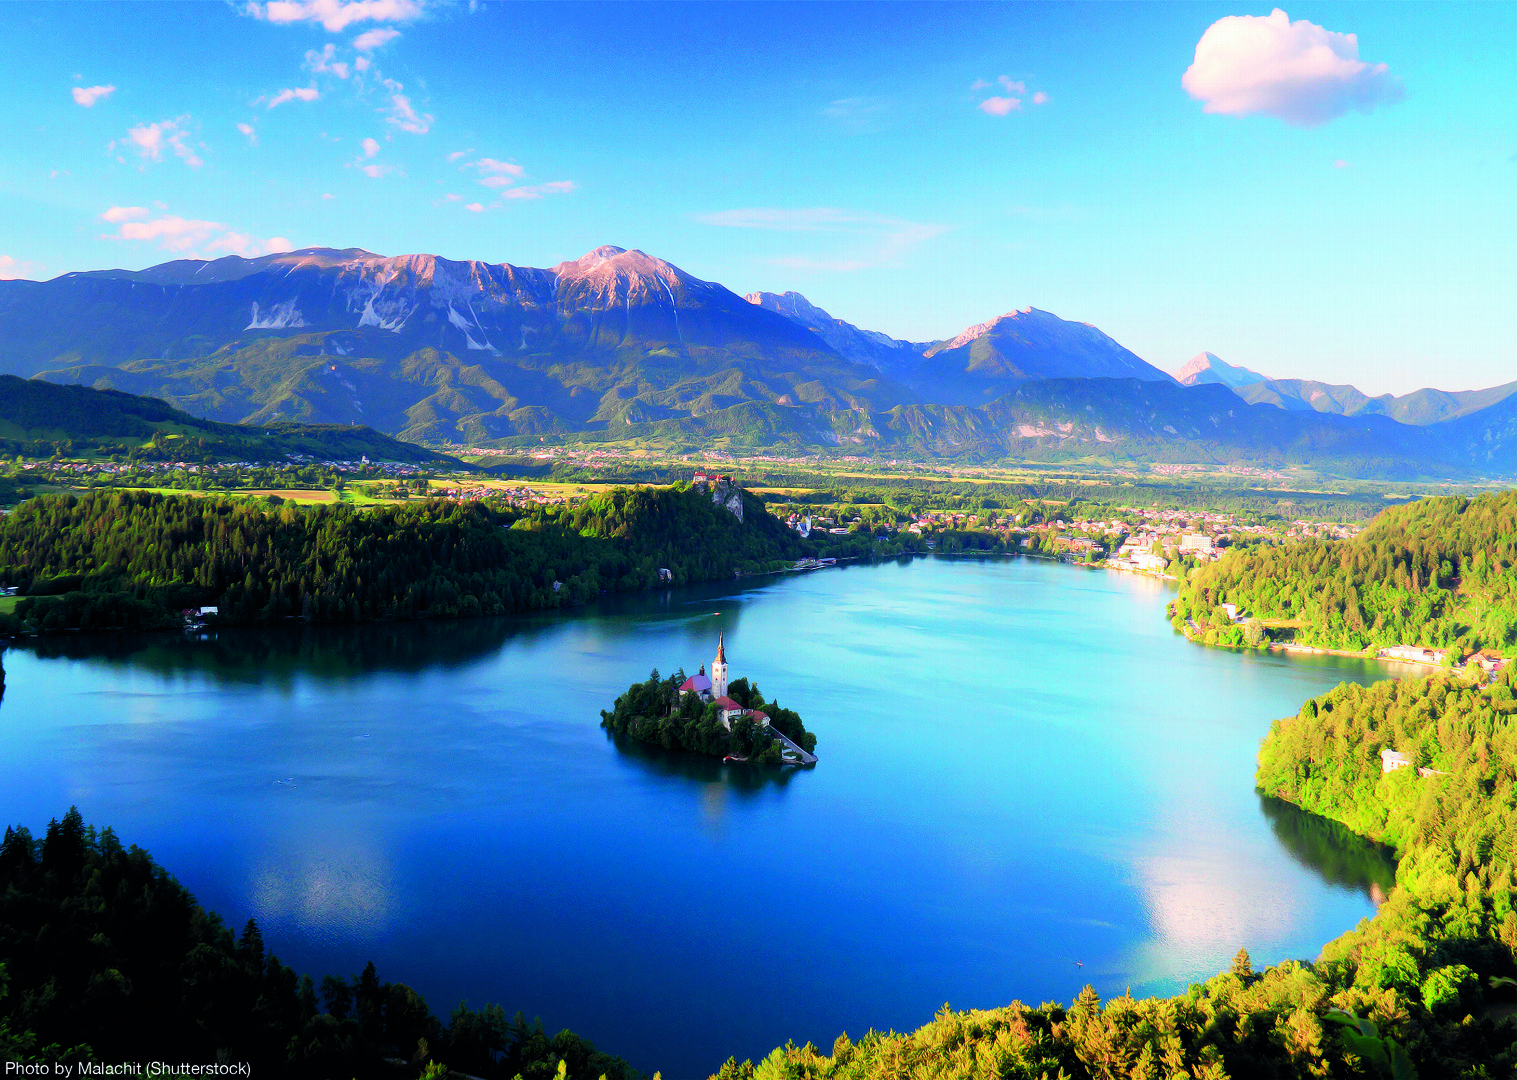 mount-vogel-slovenia-magical-lake-bled-self-guided-family-cycling-holiday.jpg - Slovenia - Magical Lake Bled - Self-Guided Family Cycling Holiday - Family Cycling